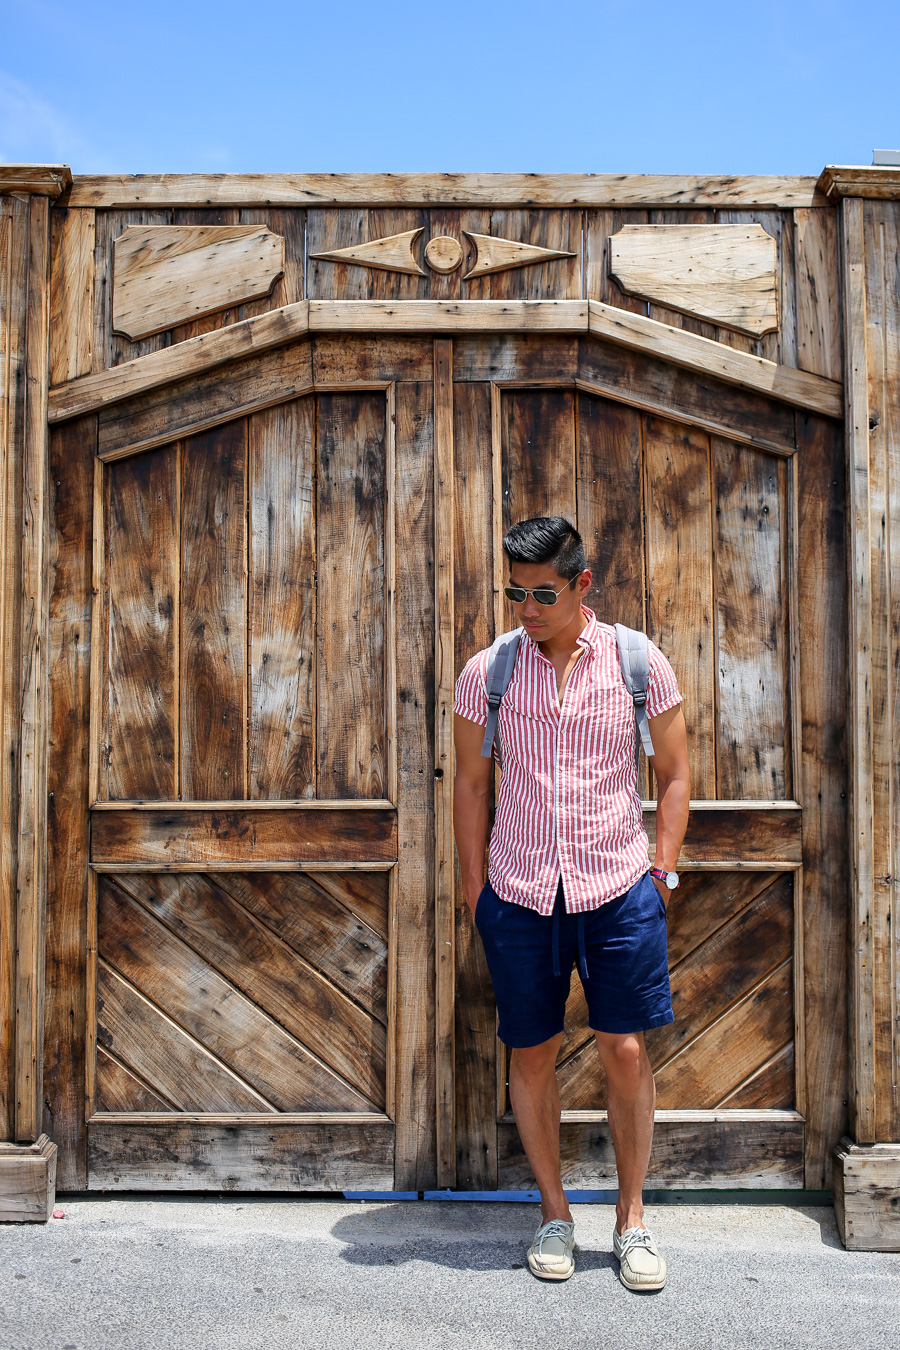 Leo Chan, Réunion, menswear, seersucker shirt, summer look, travel guide, Alicia Mara